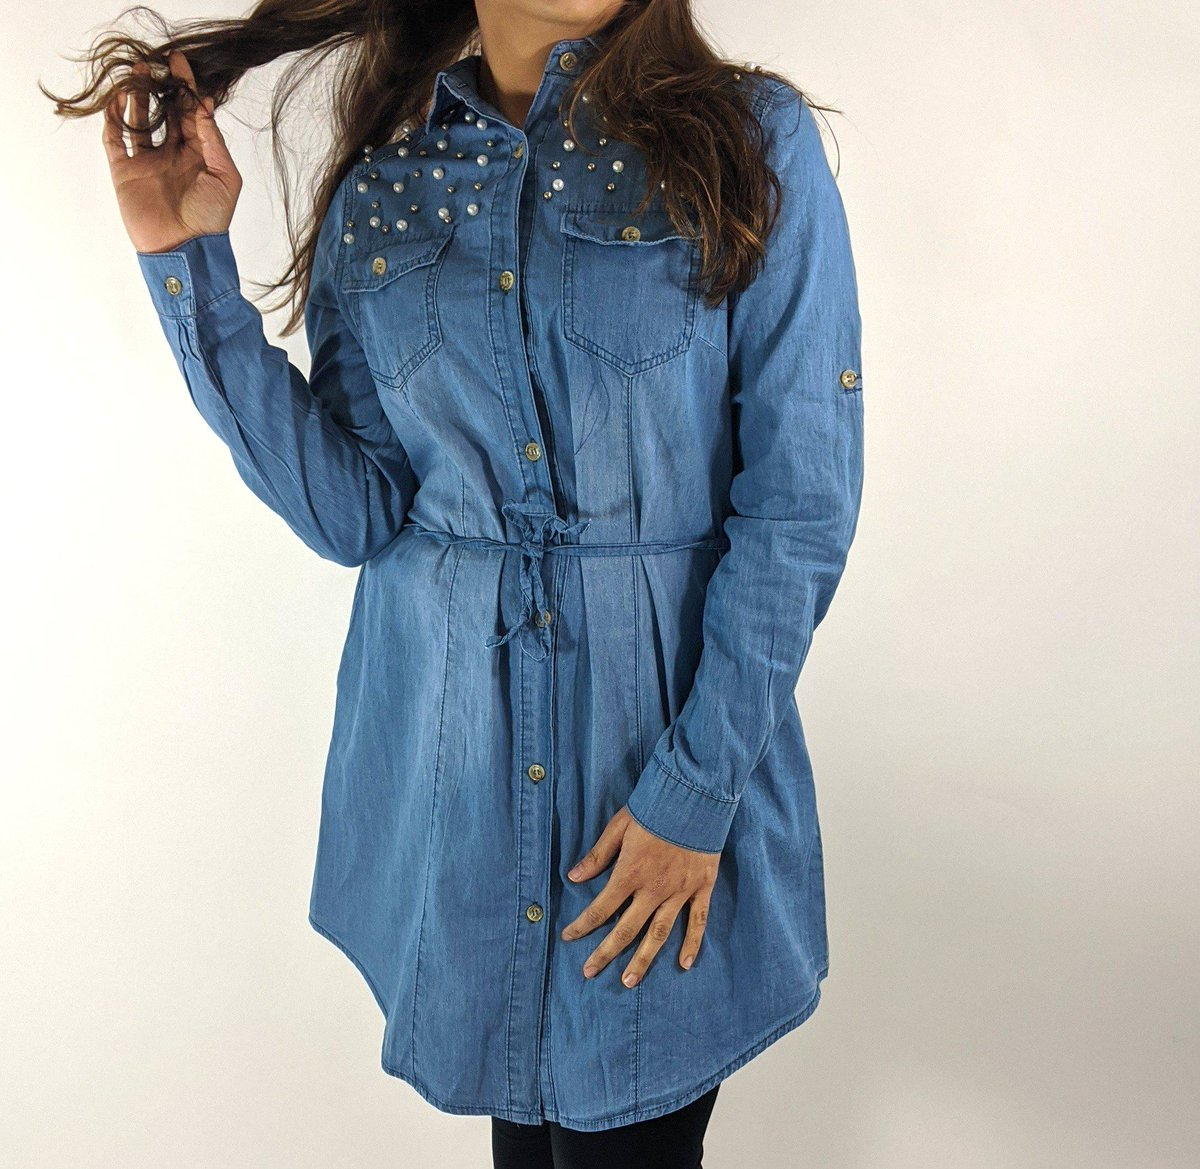 Limited stock left in these pearl detailed denim shirts! 😍 DM to place an order or for more information - PayPal & Bank Transfer accepted . #instalove #instablog #instafashion #fashion #naqsh #naqshonline #follow #trending #love #fashionblogger #blog #blogger #denim #shirt #top